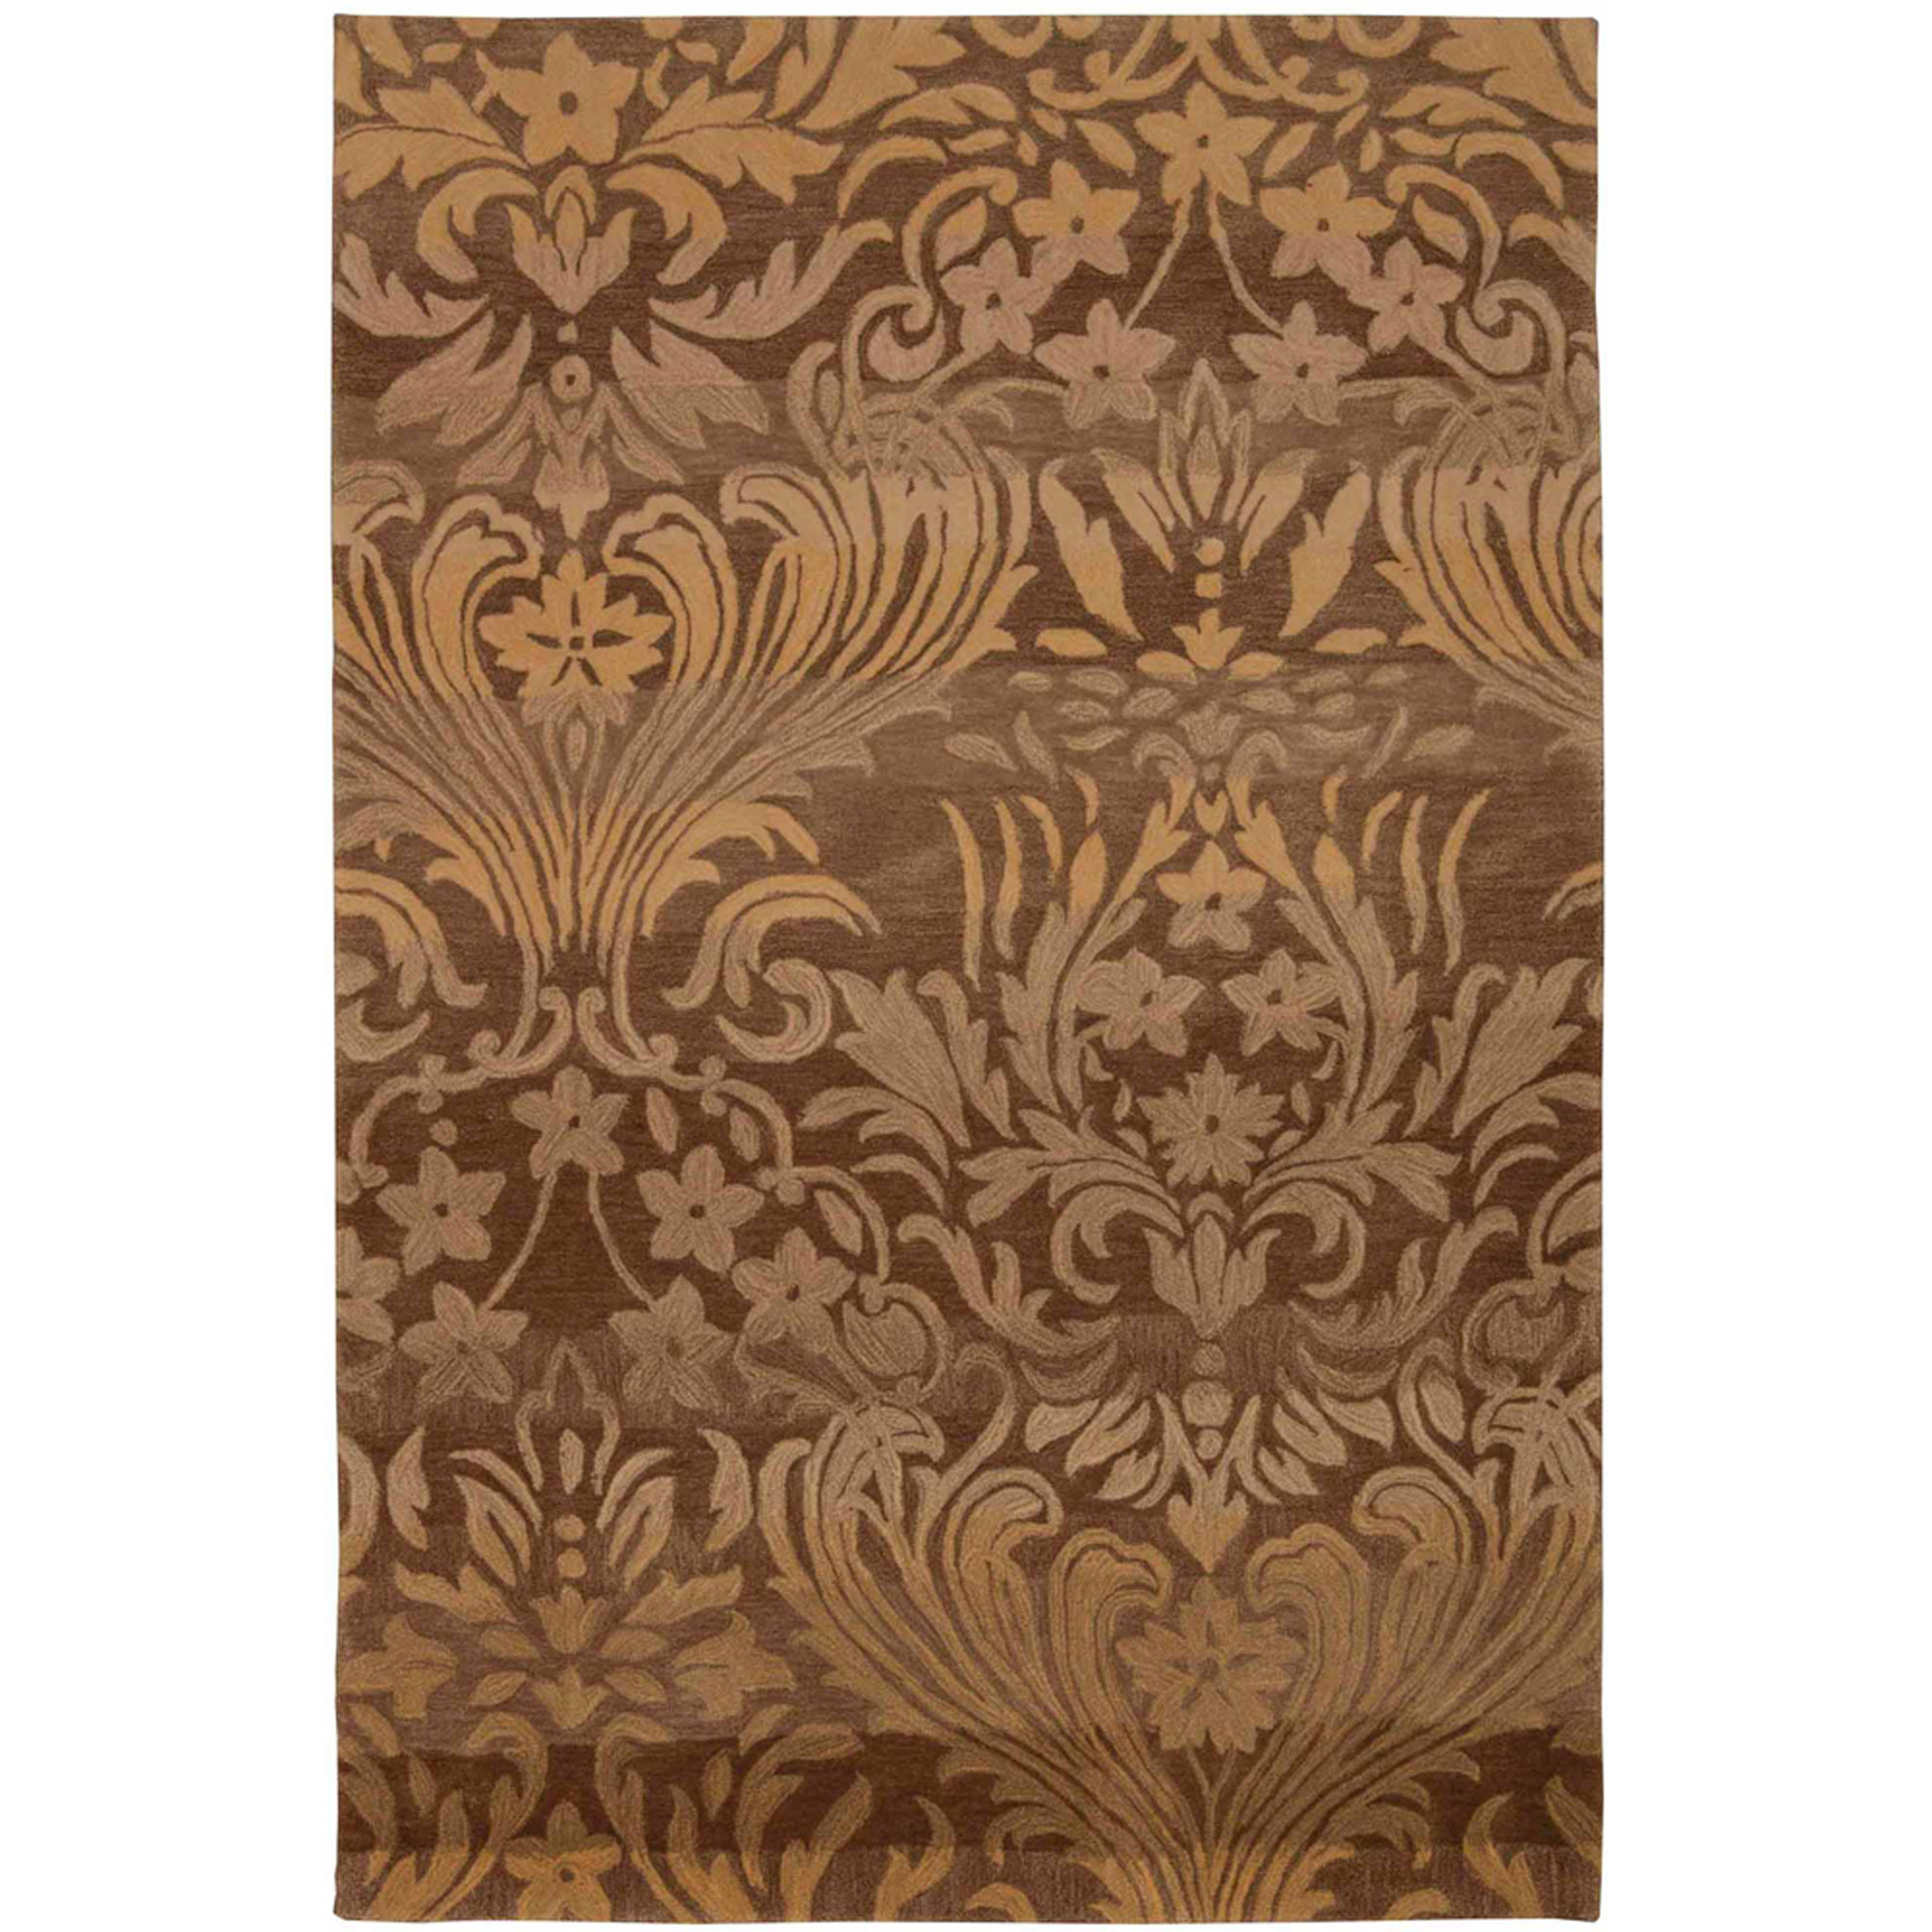 Contour CON46 Astrological Inspired Area Rug by Nourison